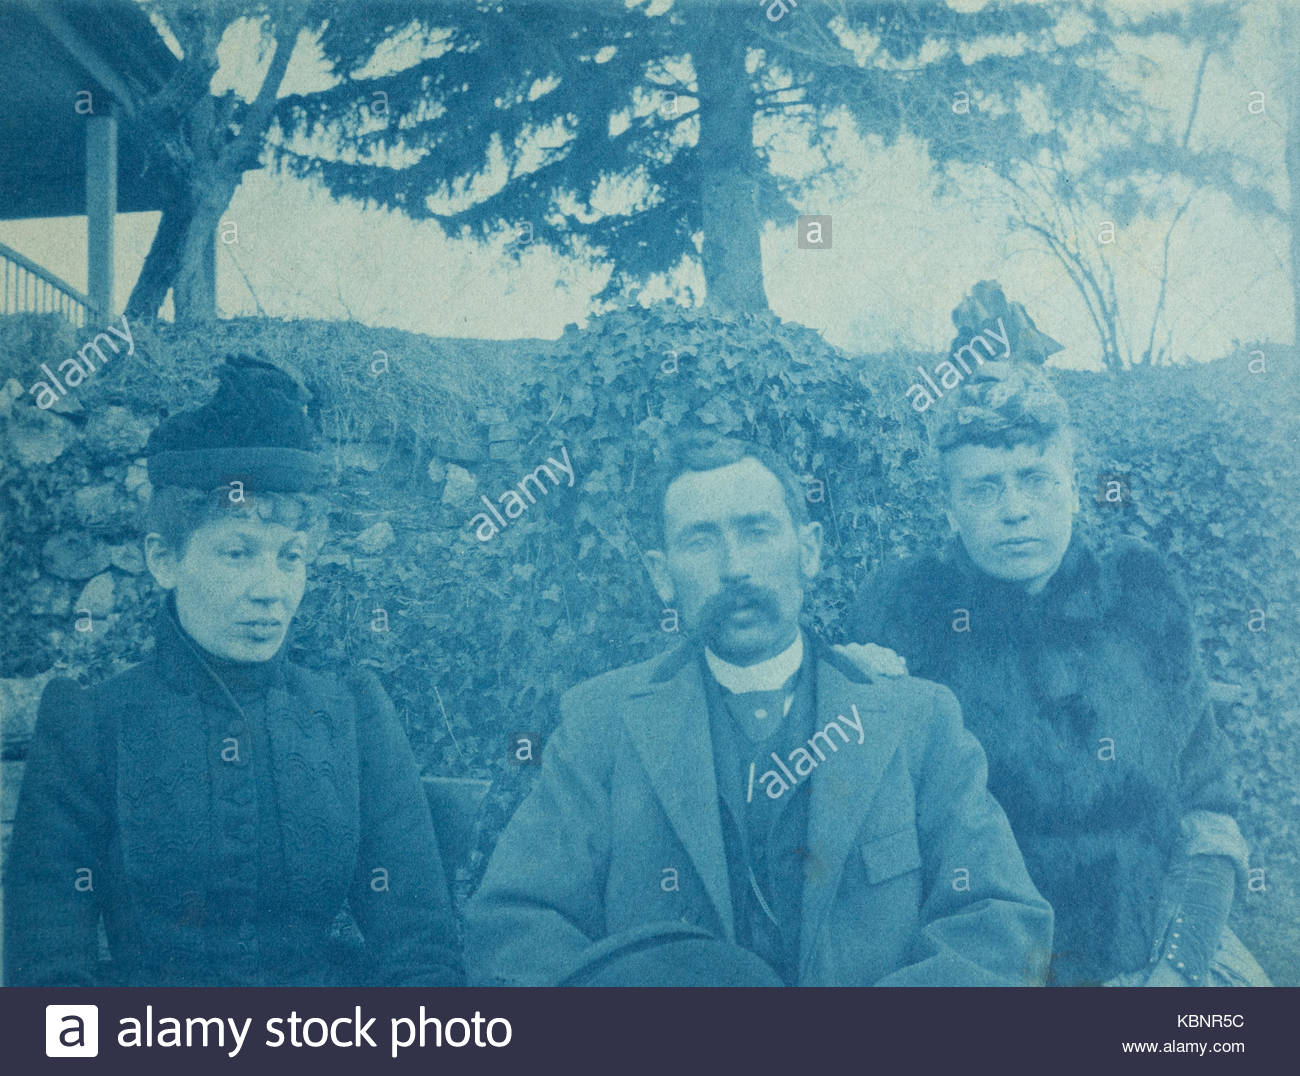 American archive cyanotype portrait photograph of a man with moustache and two women. They are sitting outside with - Stock Image